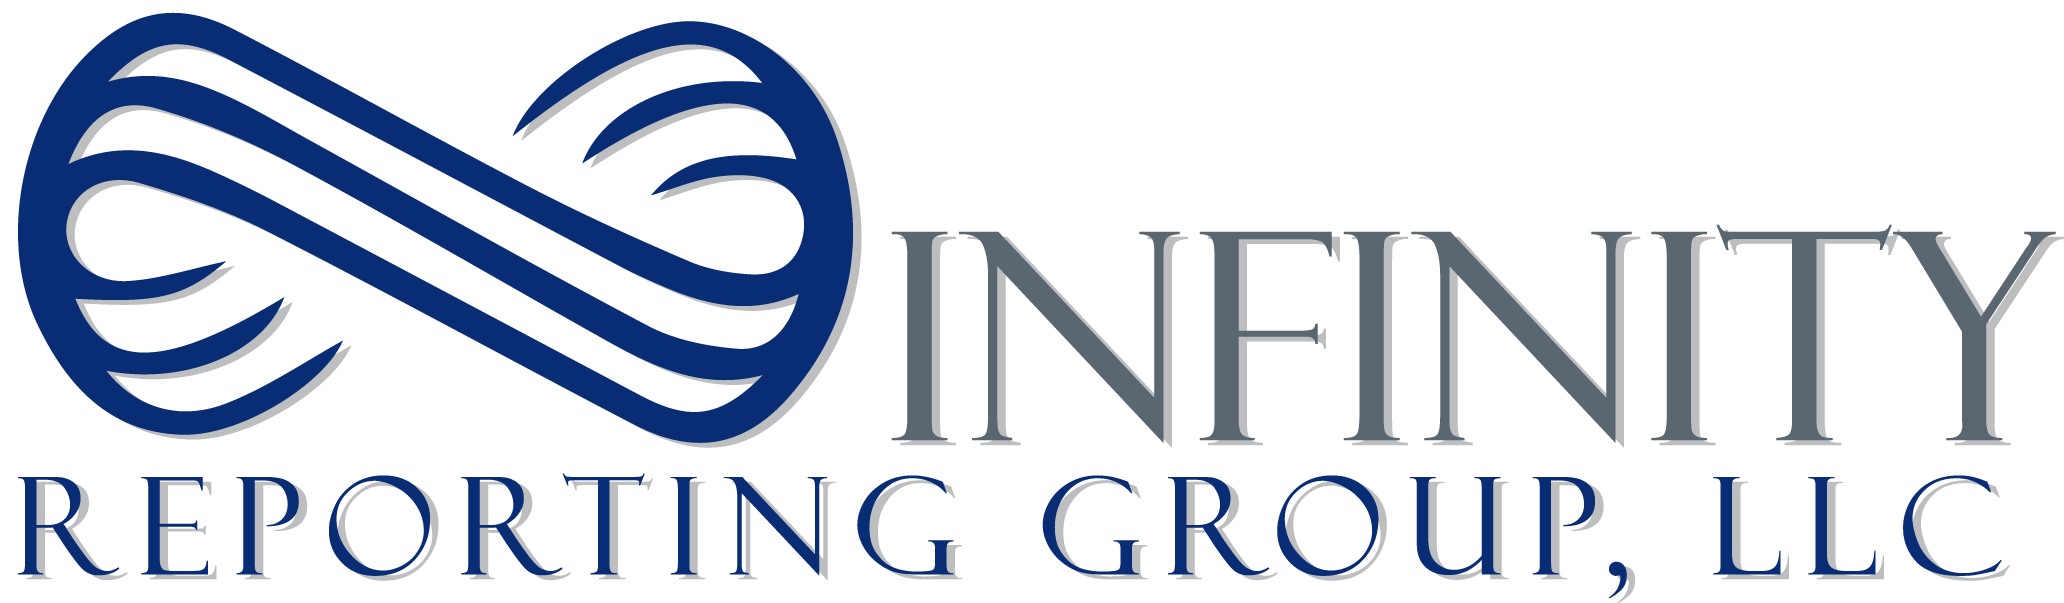 Infinity Reporting Group LLC